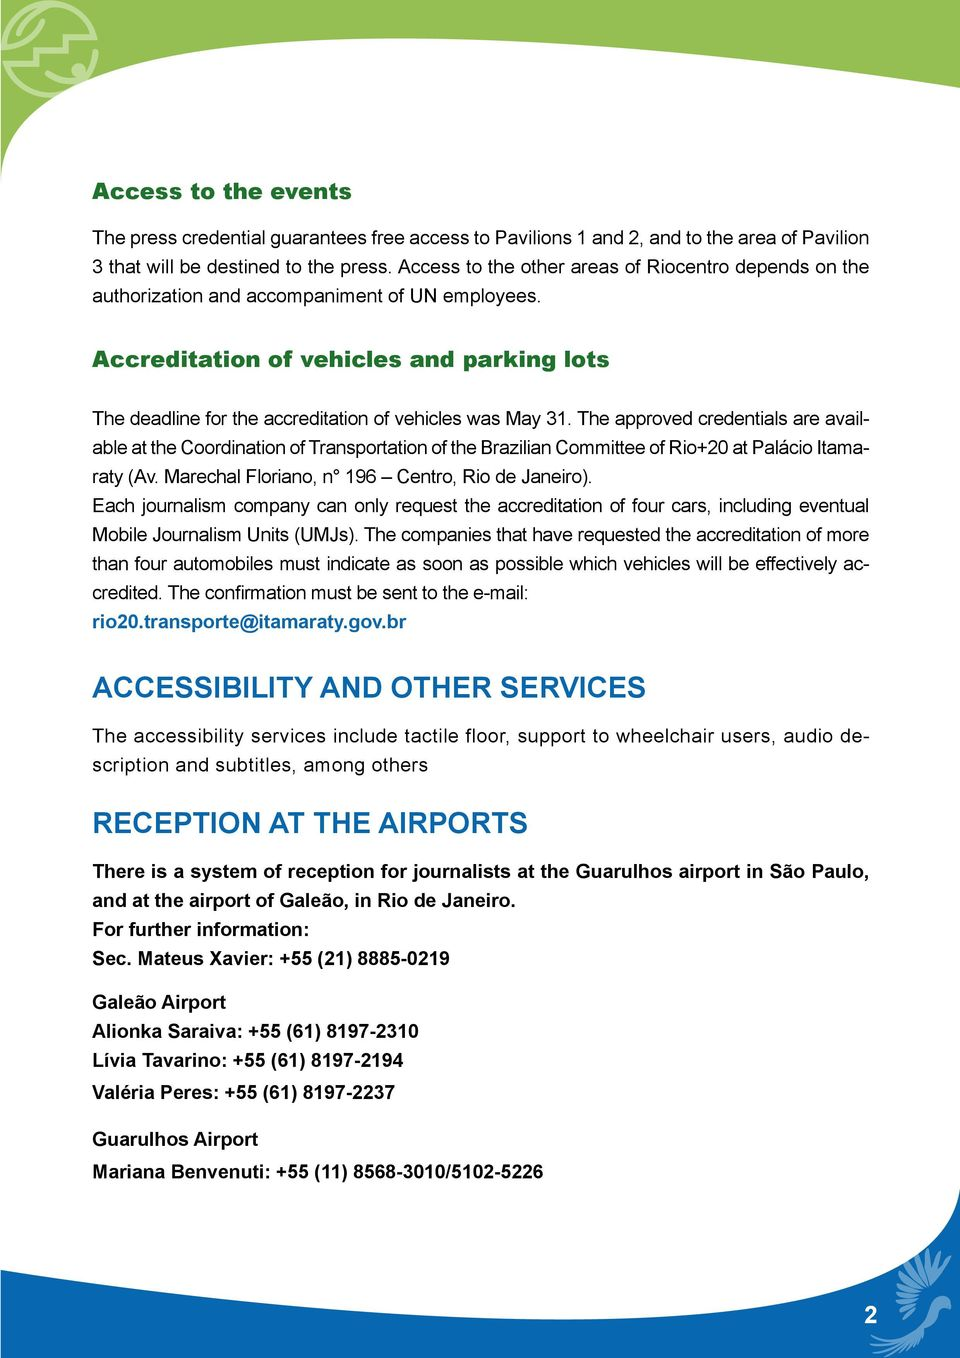 Accreditation of vehicles and parking lots The deadline for the accreditation of vehicles was May 31.